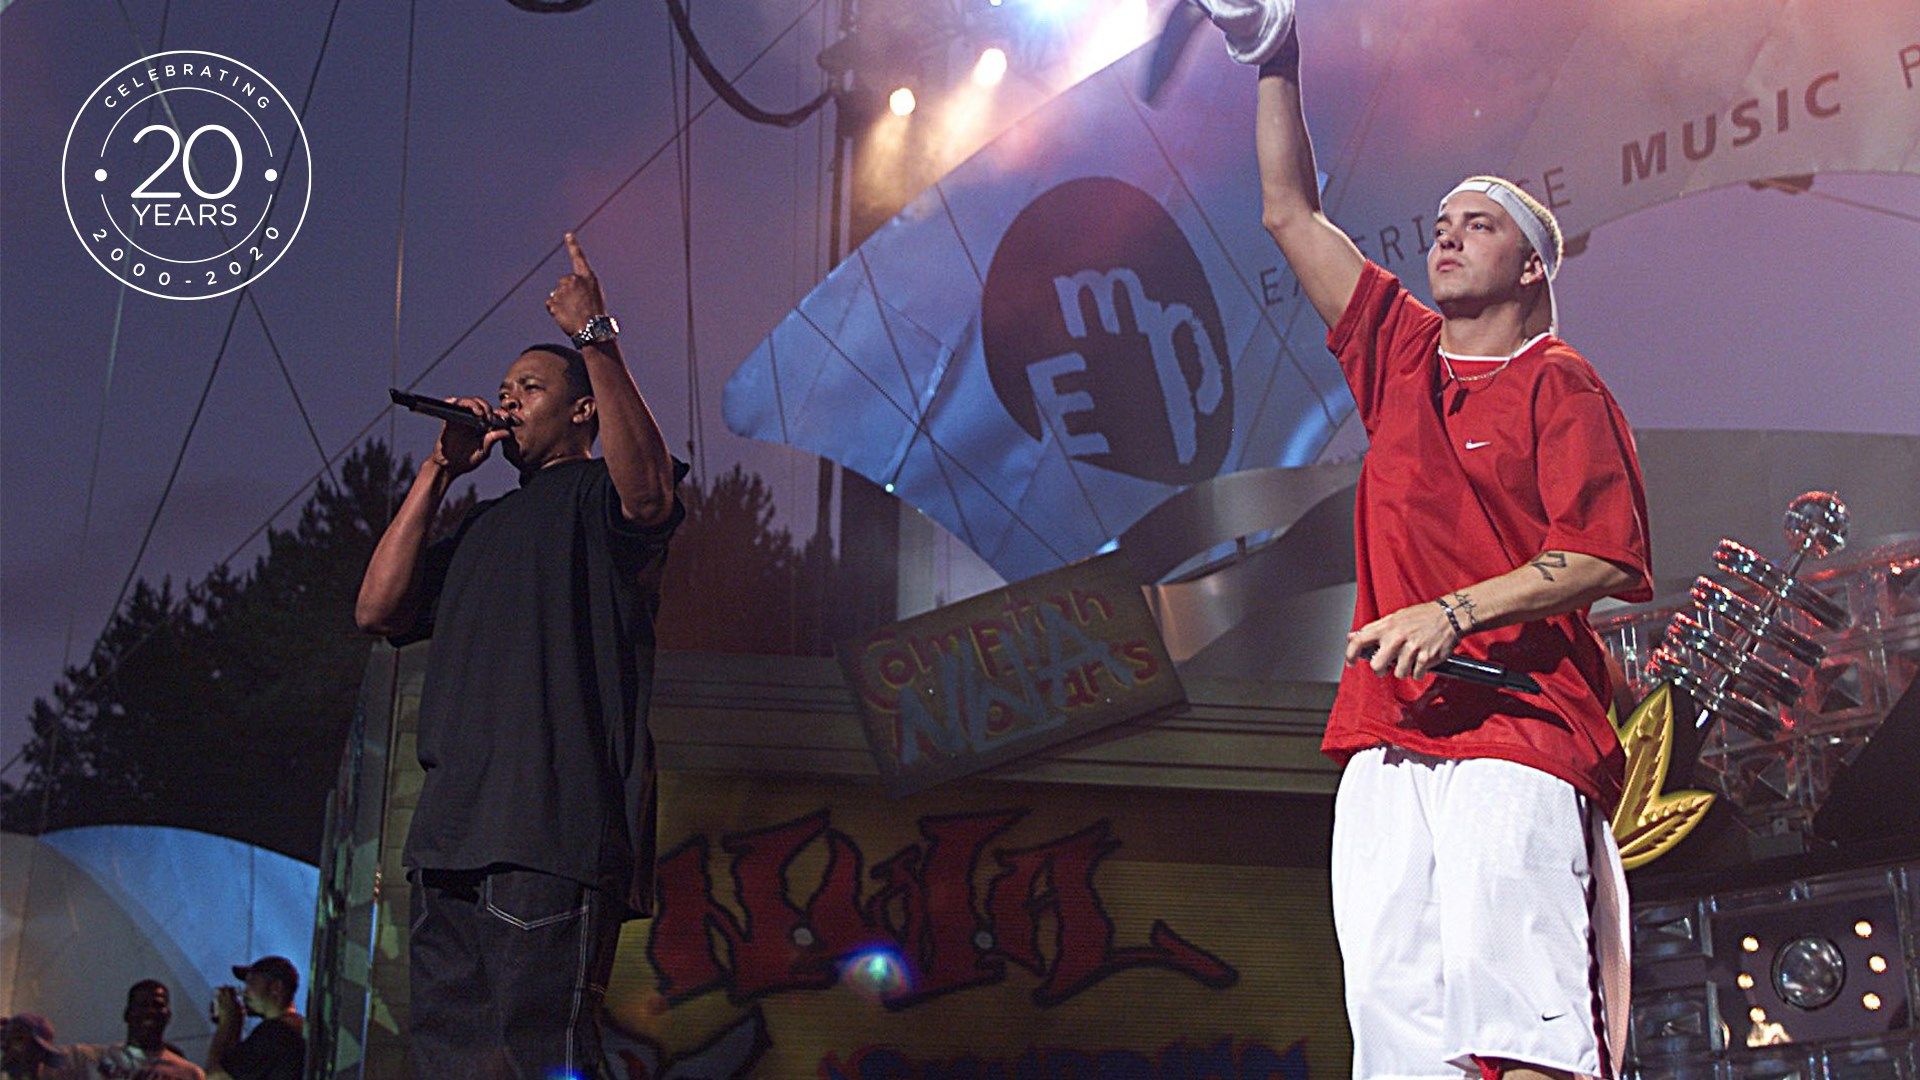 Dr. Dre and Eminem perform at MoPOP's museum-opening party